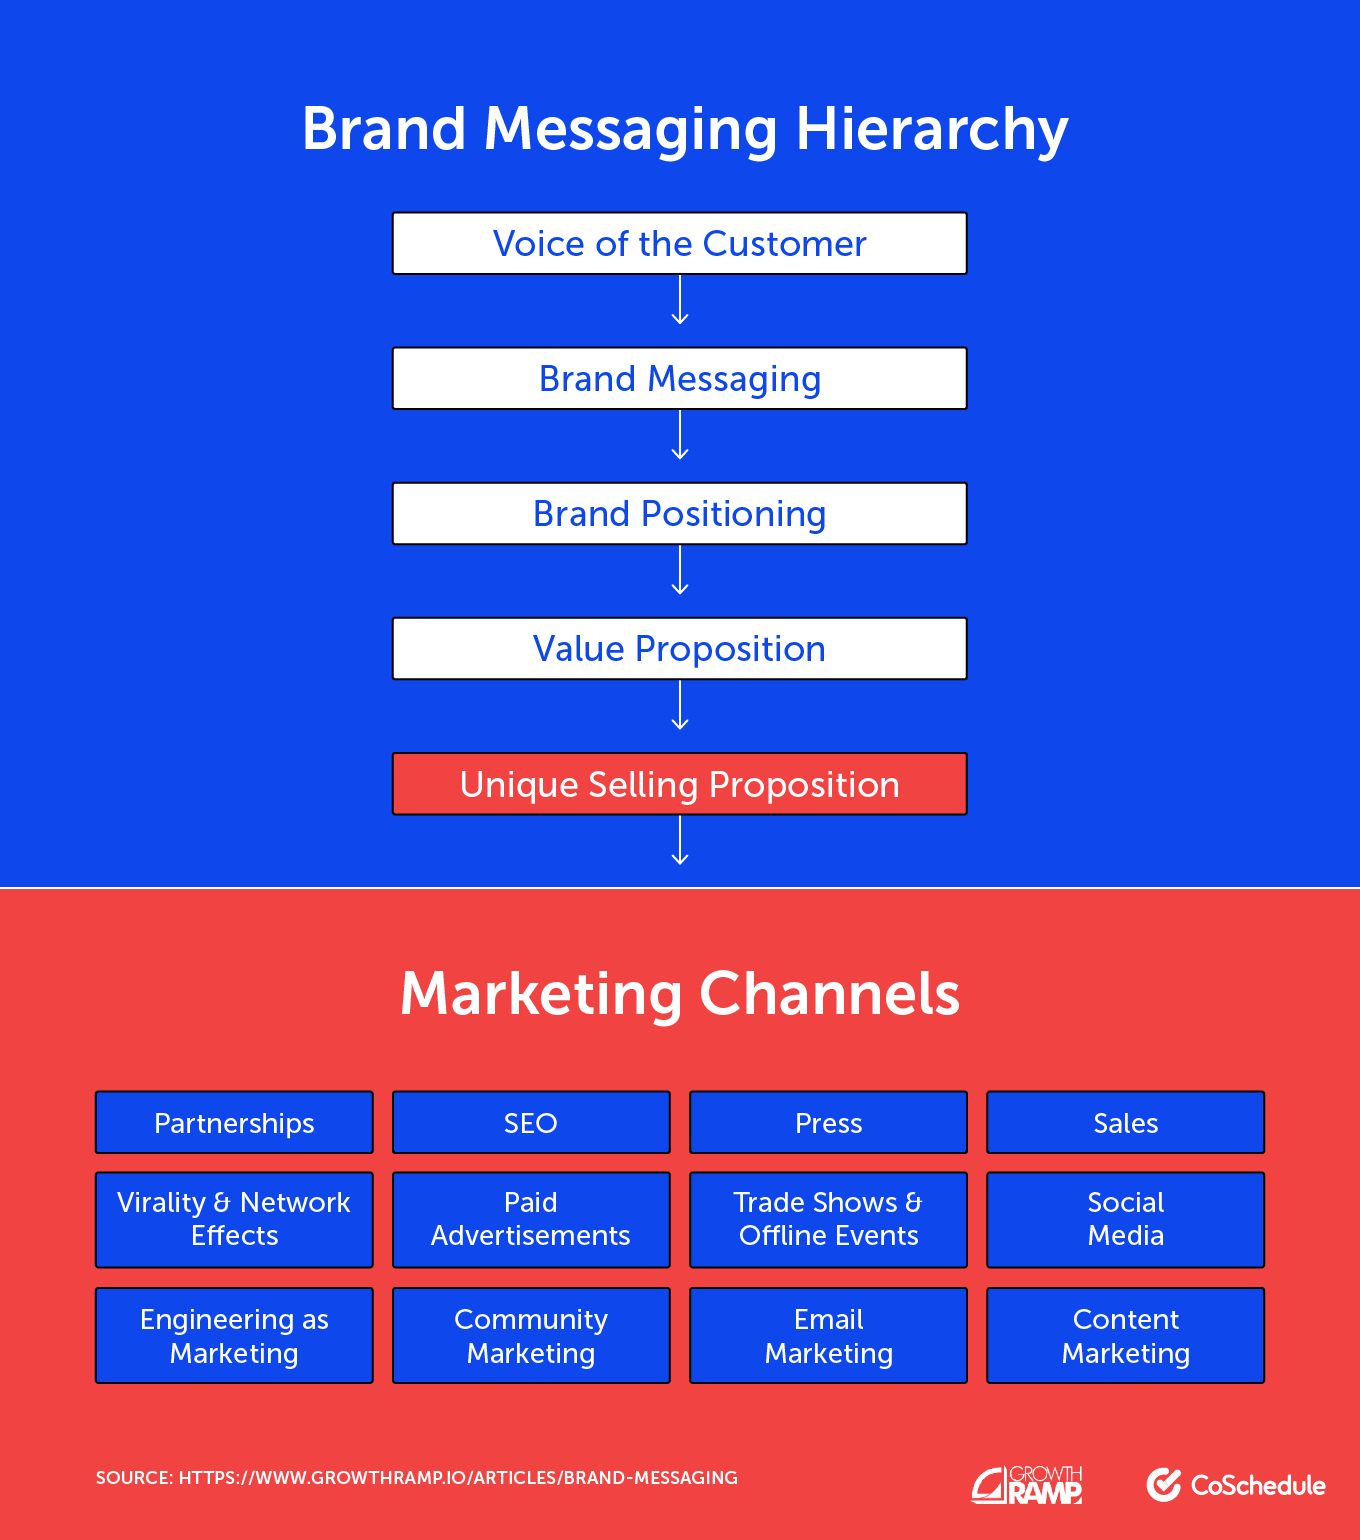 Visual of the brand messaging hierarchy and marketing channels